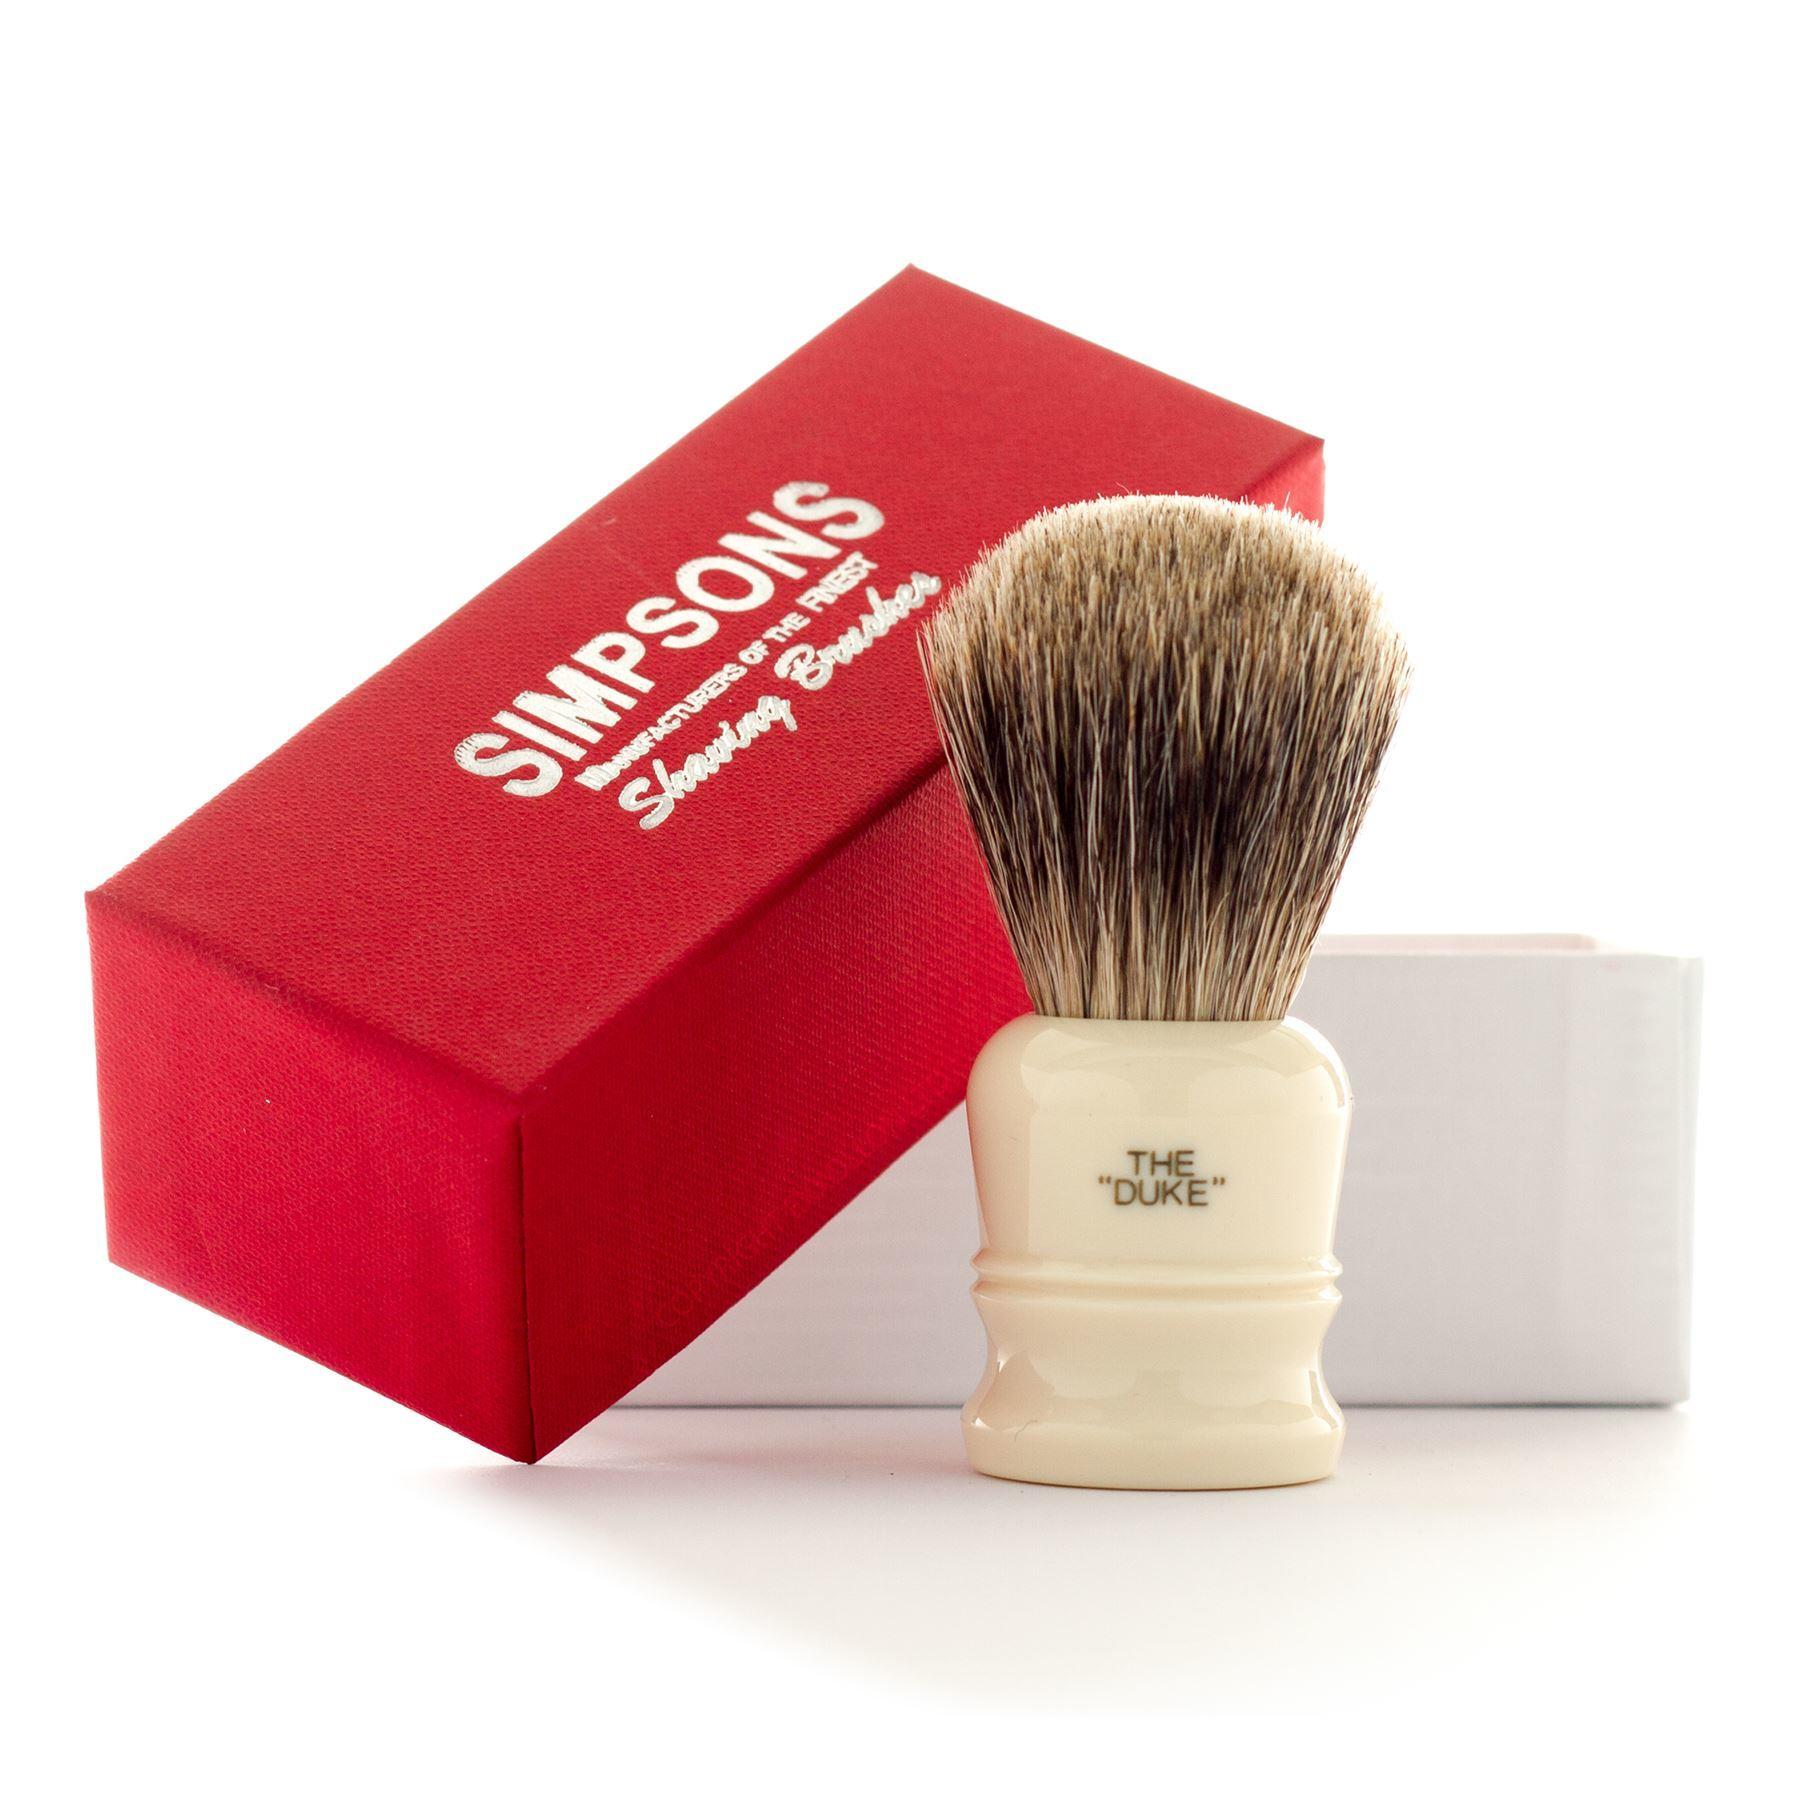 Simpsons Duke D1 Pure Badger Hair Shaving Brush